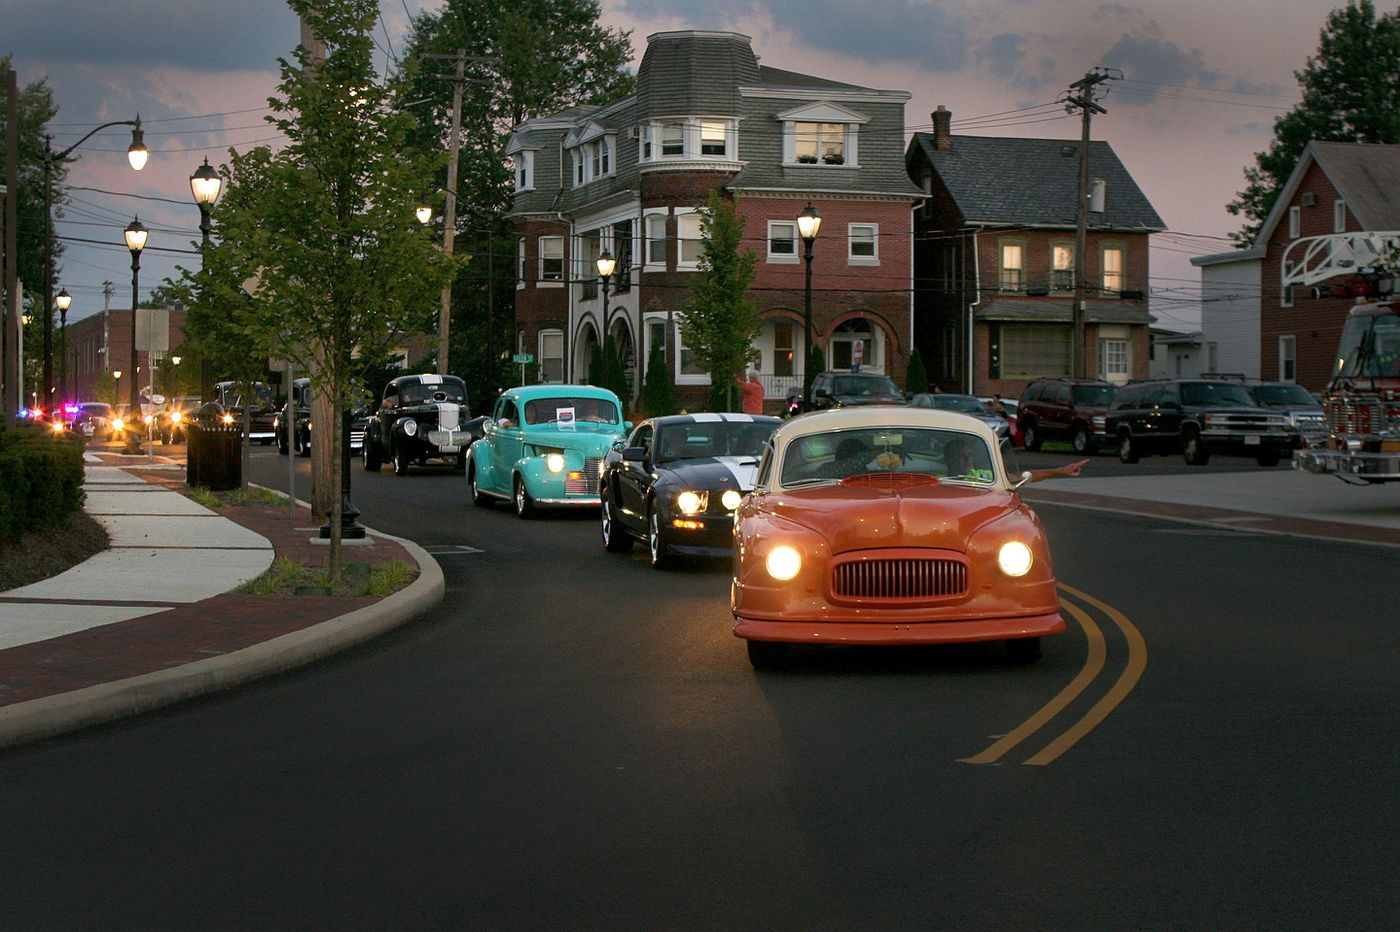 Pa. towns are saving millions by teaming up to buy LED lights. It could be a national model